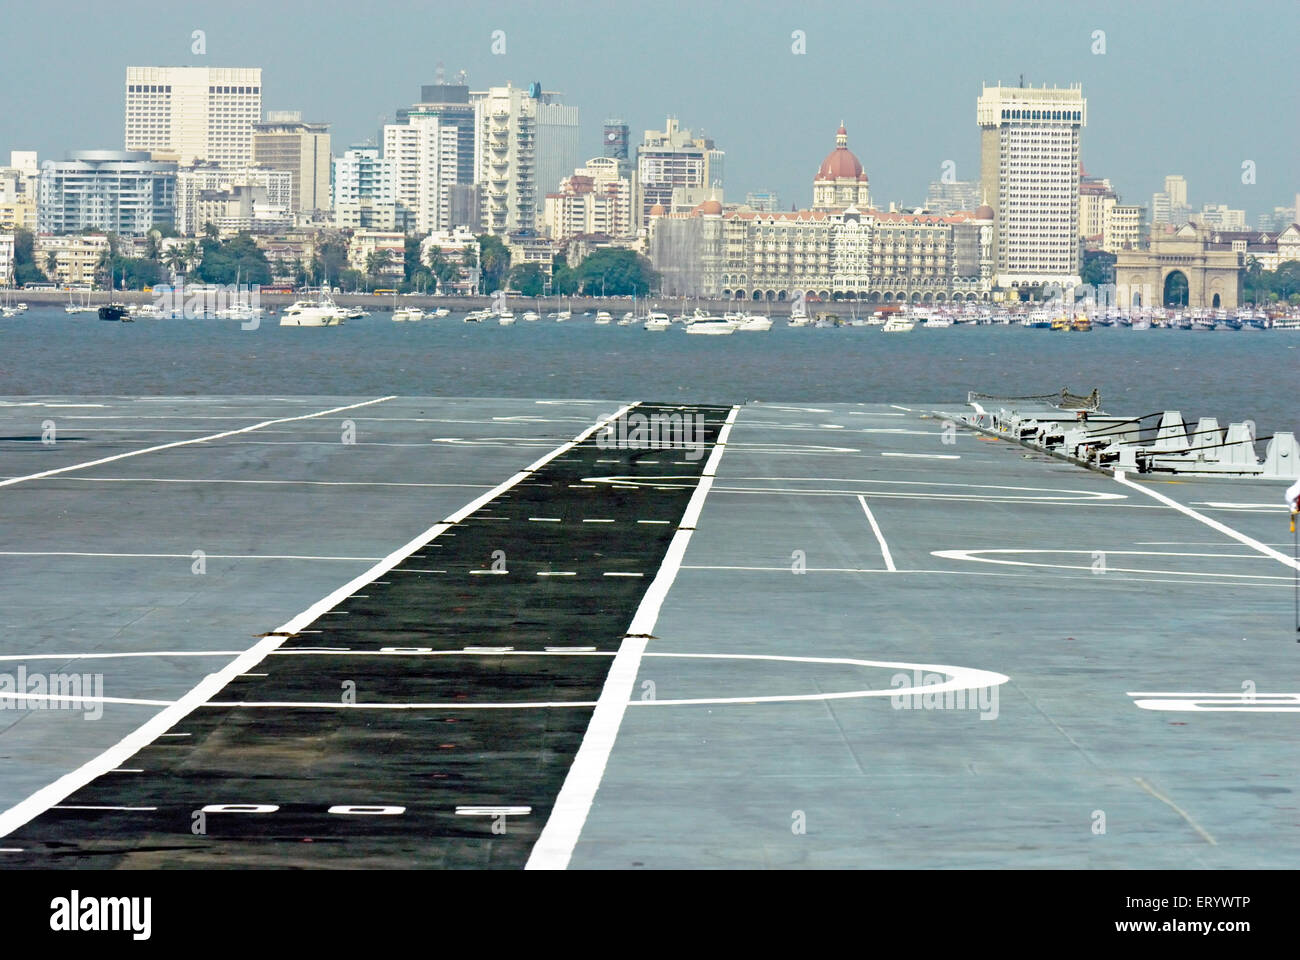 Flight deck of aircraft carrier INS viraat R22 indian navy ; Bombay ; Mumbai ; Maharashtra ; India - Stock Image